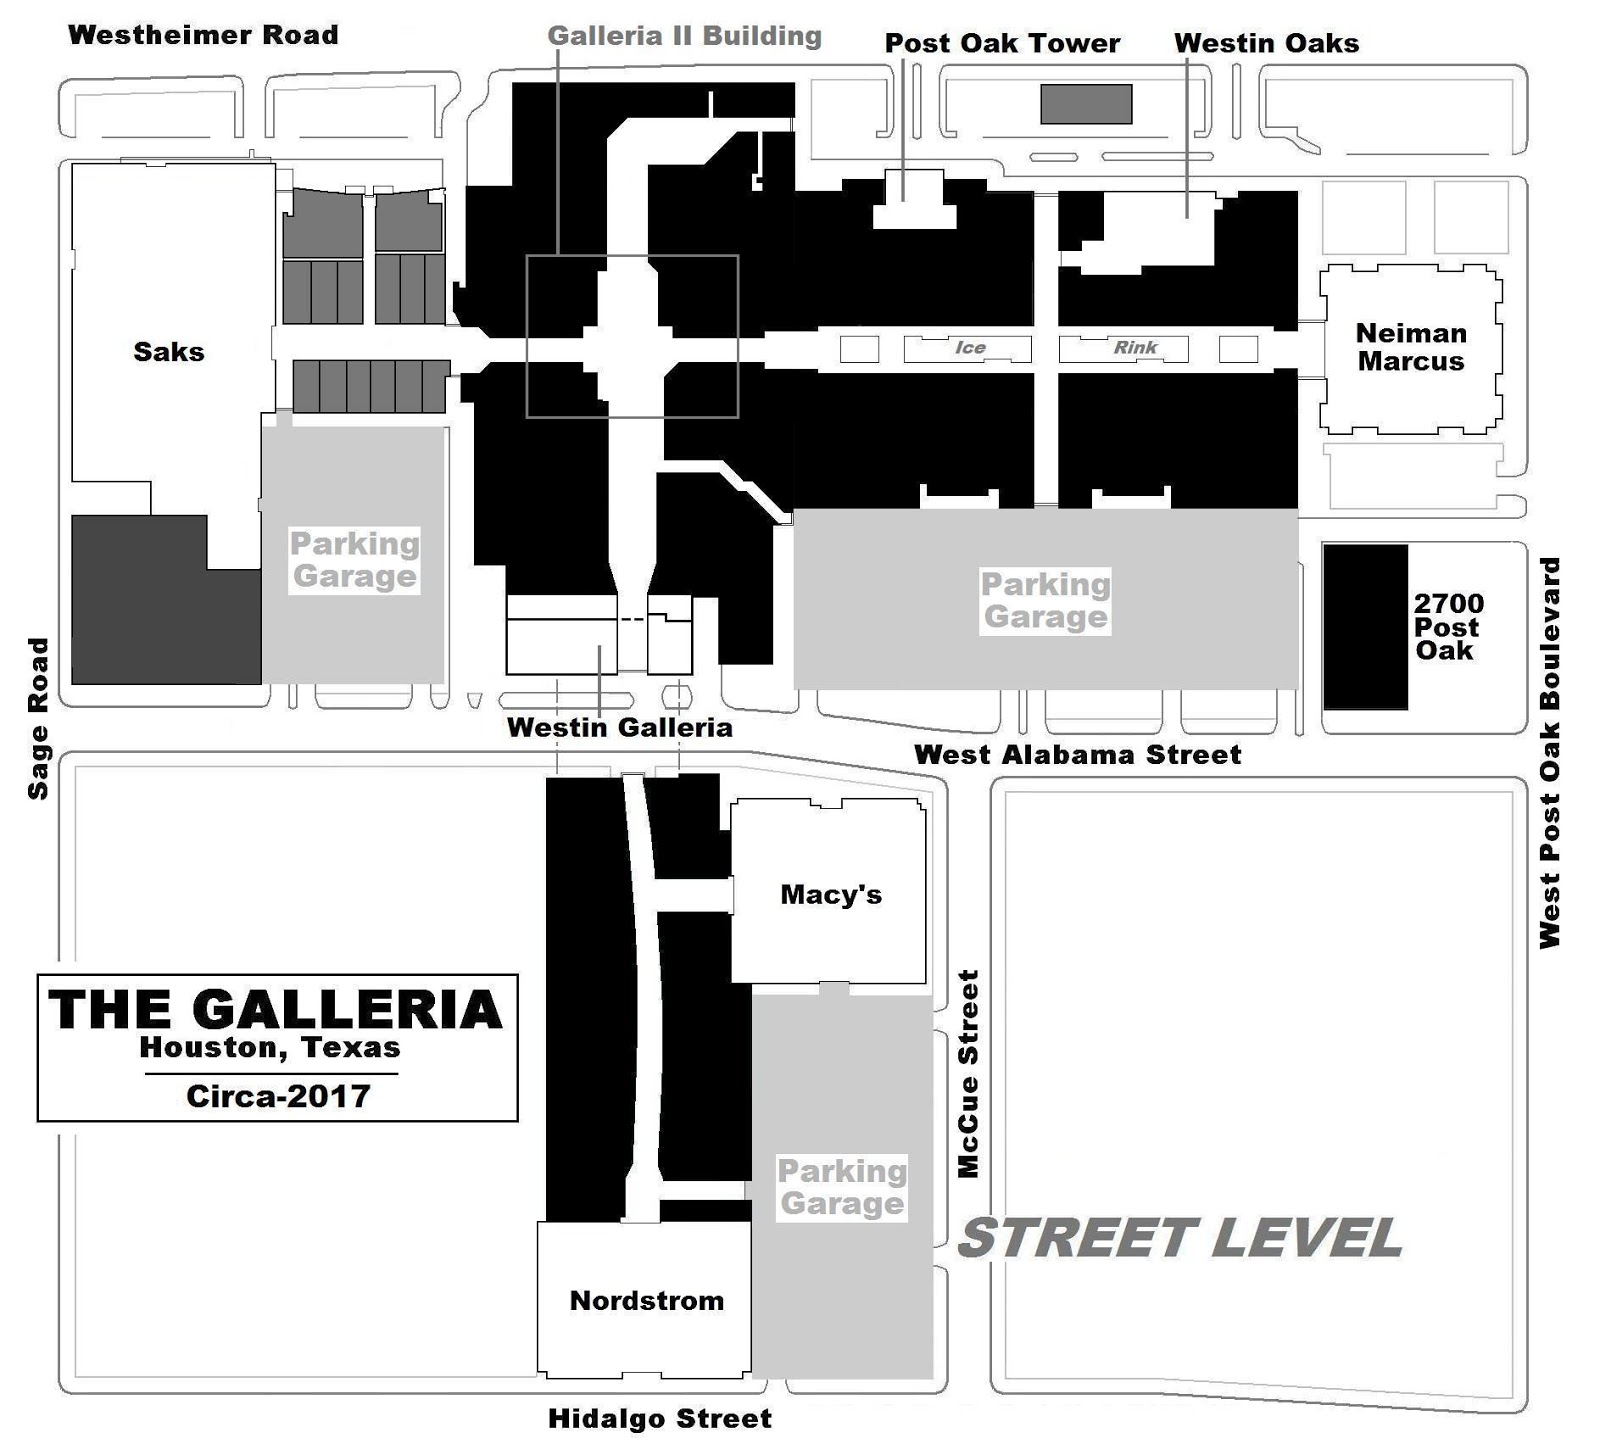 west wing office space layout circa 1990. A Circa-2017 Site Plan Shows Renovations Done Over The Past 3 Years. These Have Added New Saks, West Wing (indicated In Gray) And \ Office Space Layout Circa 1990